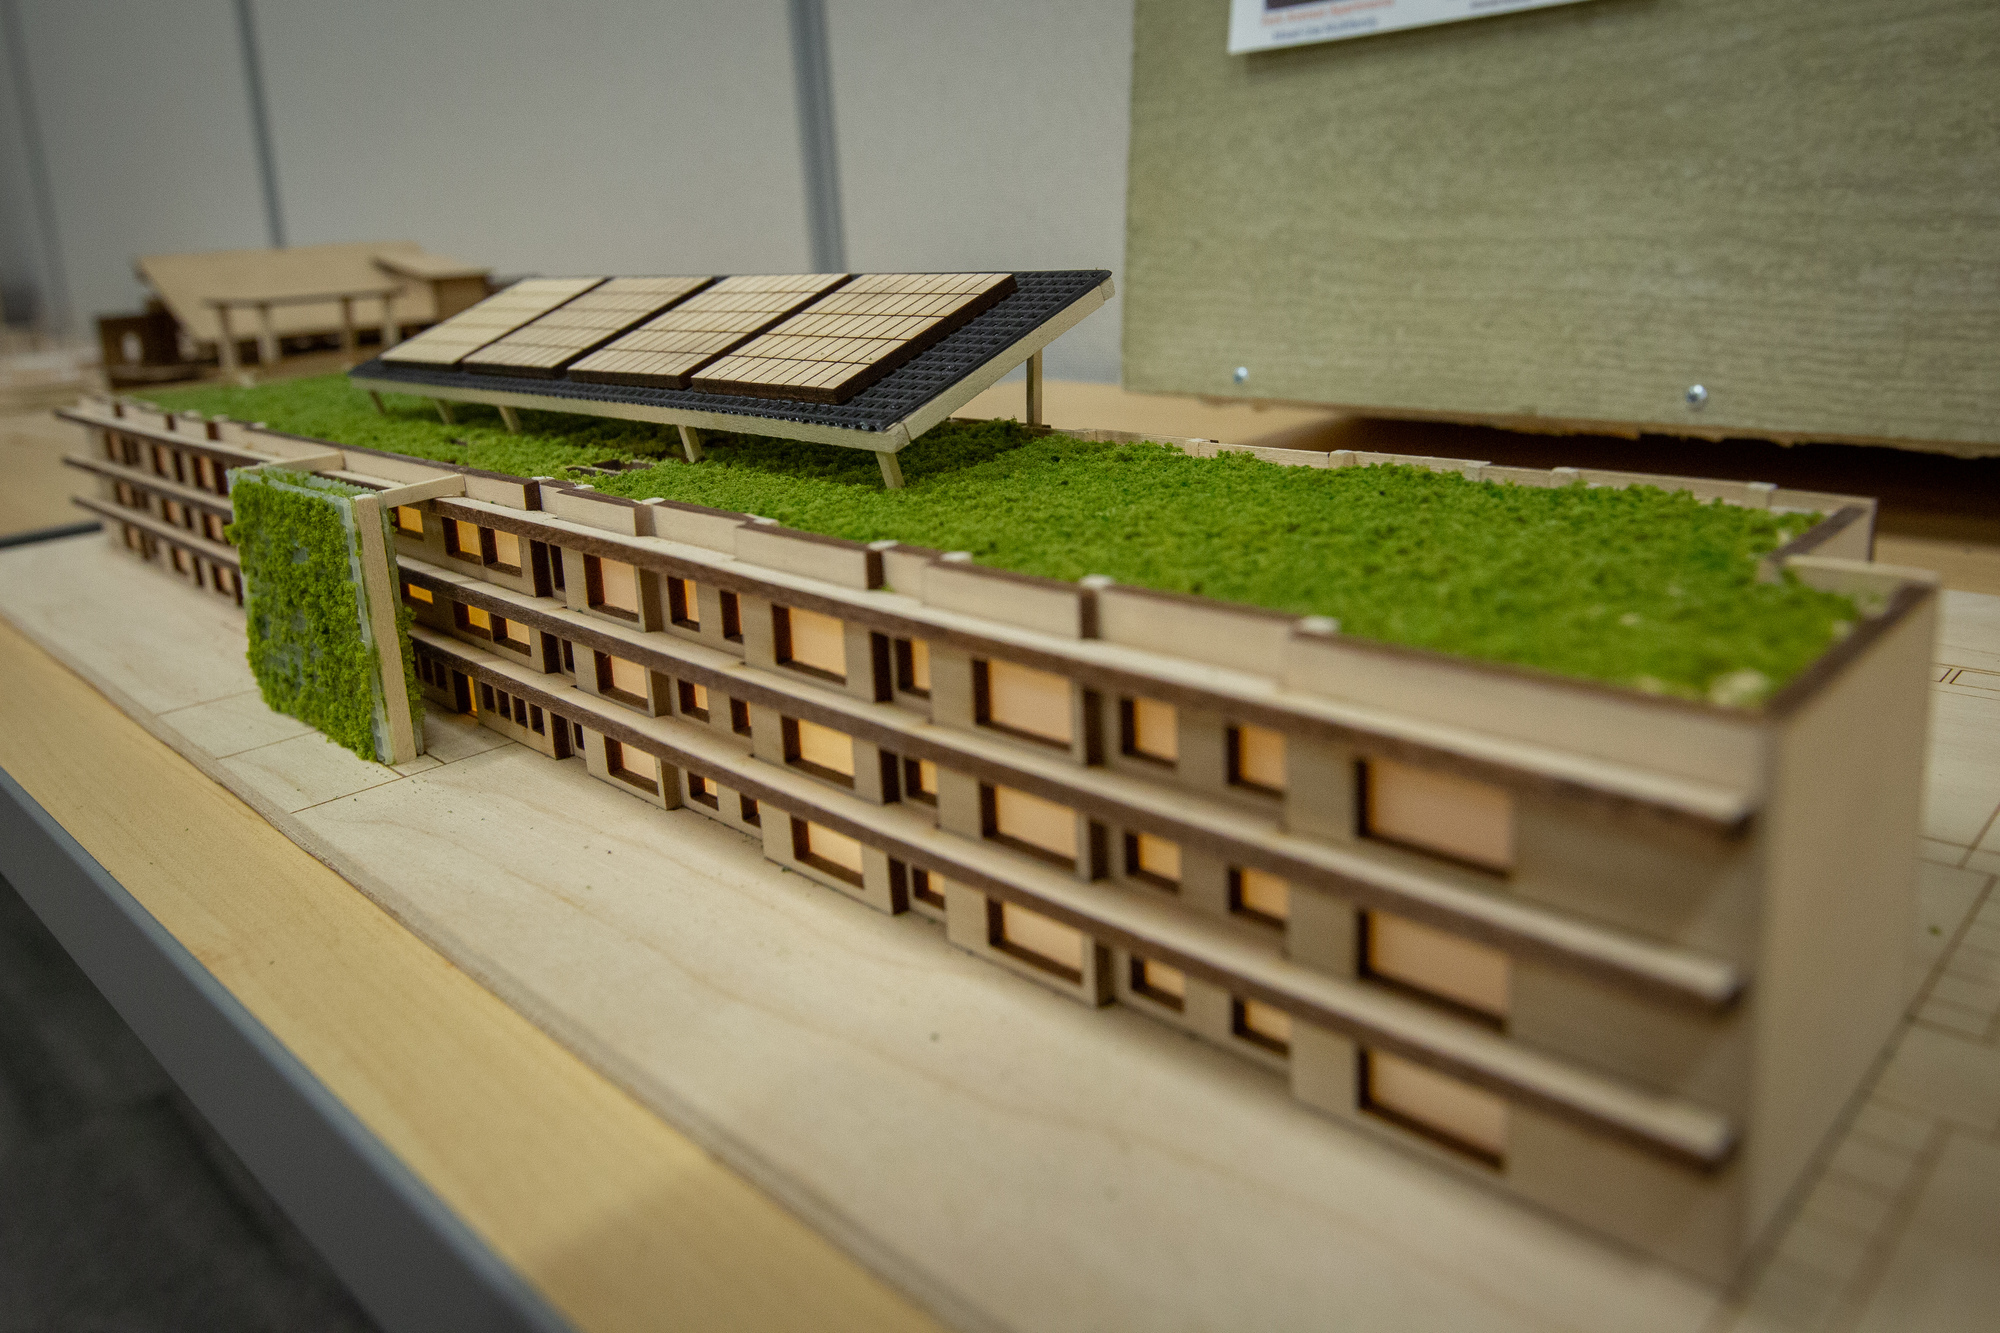 Scale model of a house from the competition.